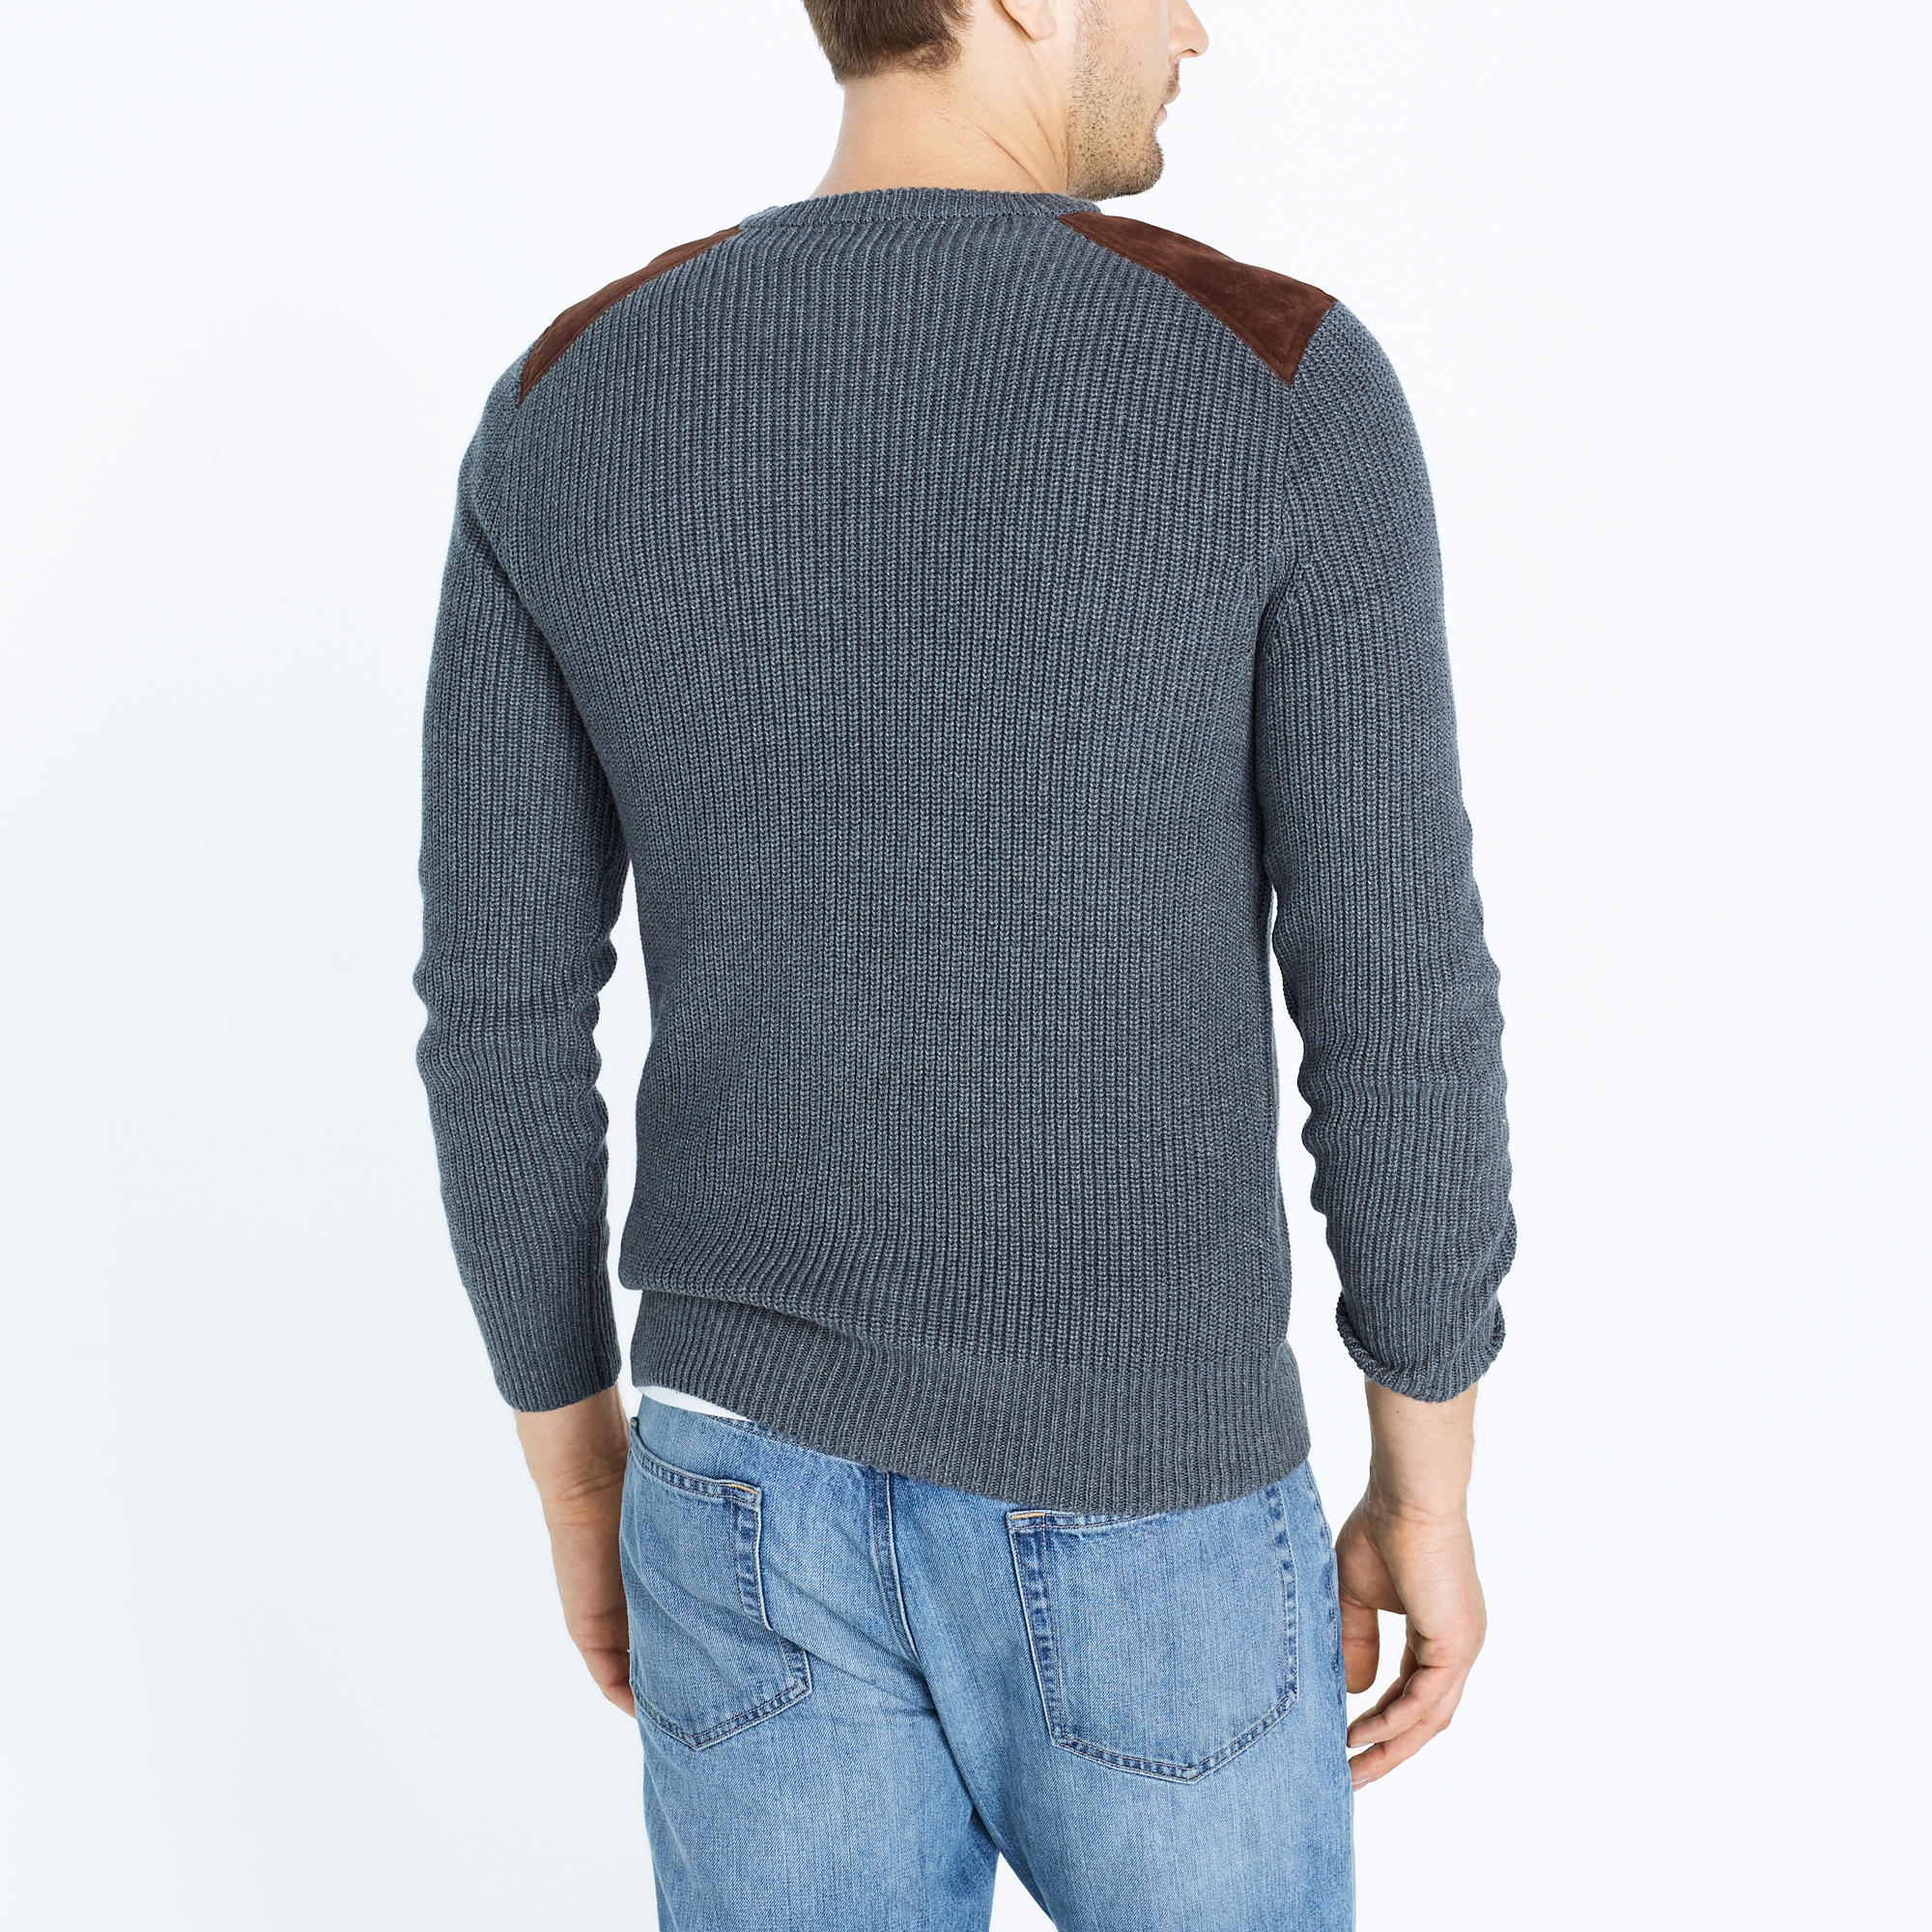 Shoulder-patch cotton crewneck sweater : FactoryMen Cotton | Factory